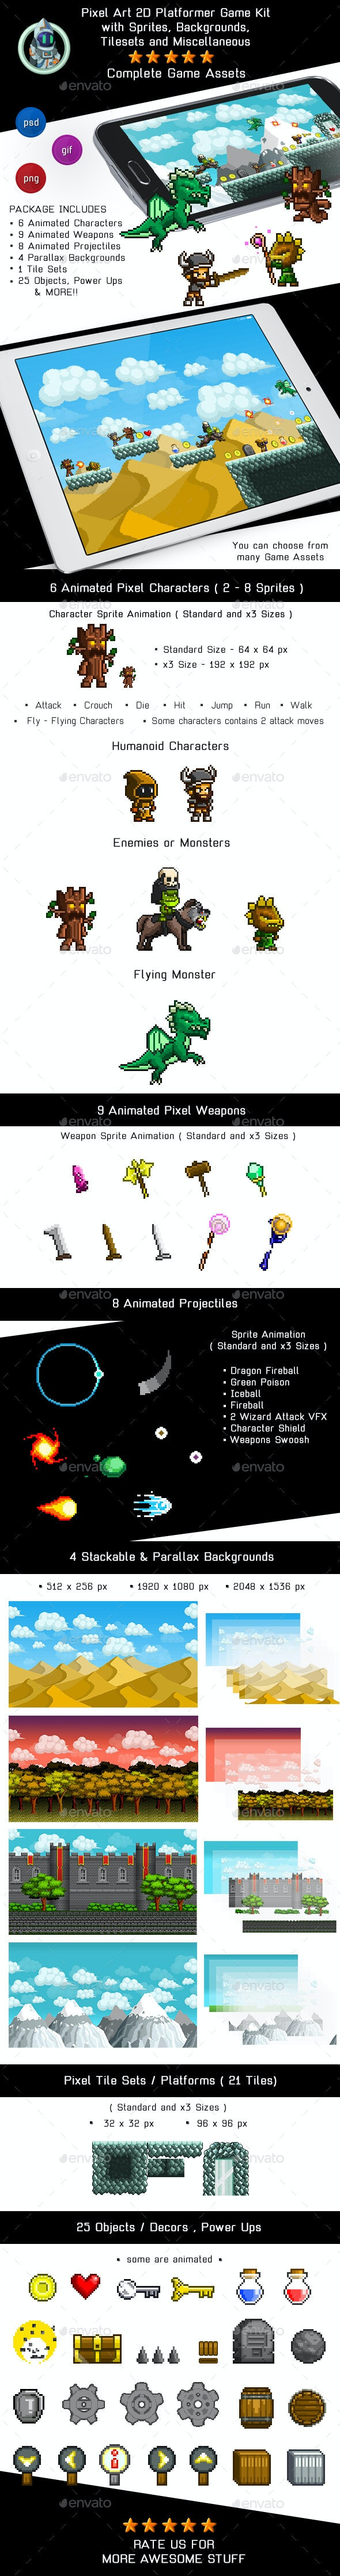 2D Pixel Game Kit 1 of 5 w character sprites & more - Game Kits Game Assets